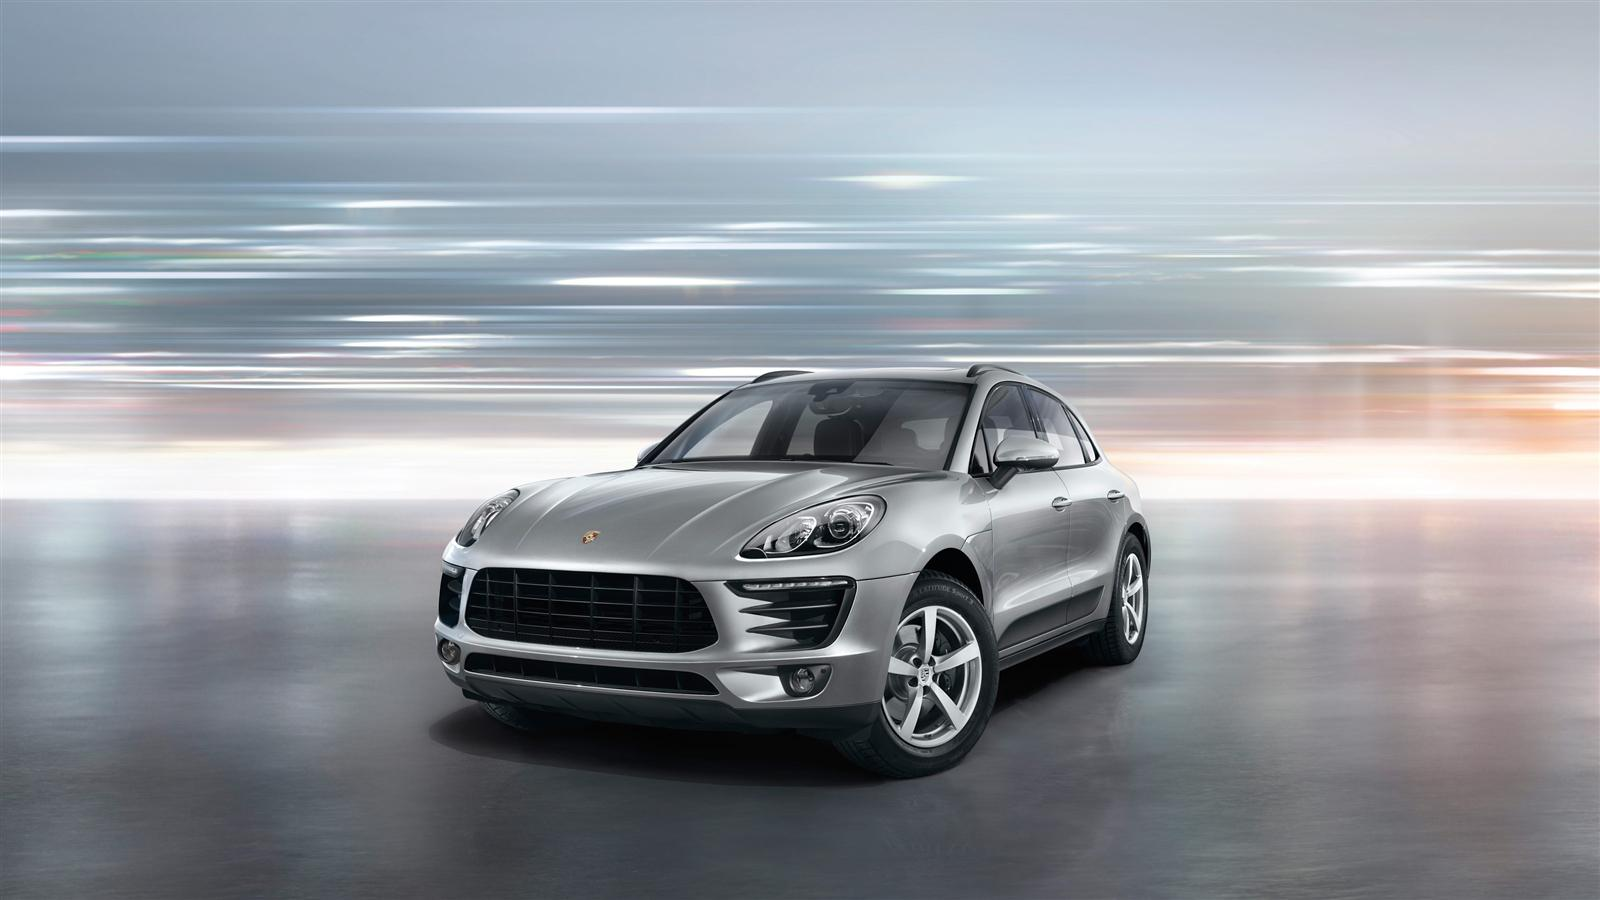 Porsche Macan 2 0l Petrol Launched In India At Inr 97 71 Lakh